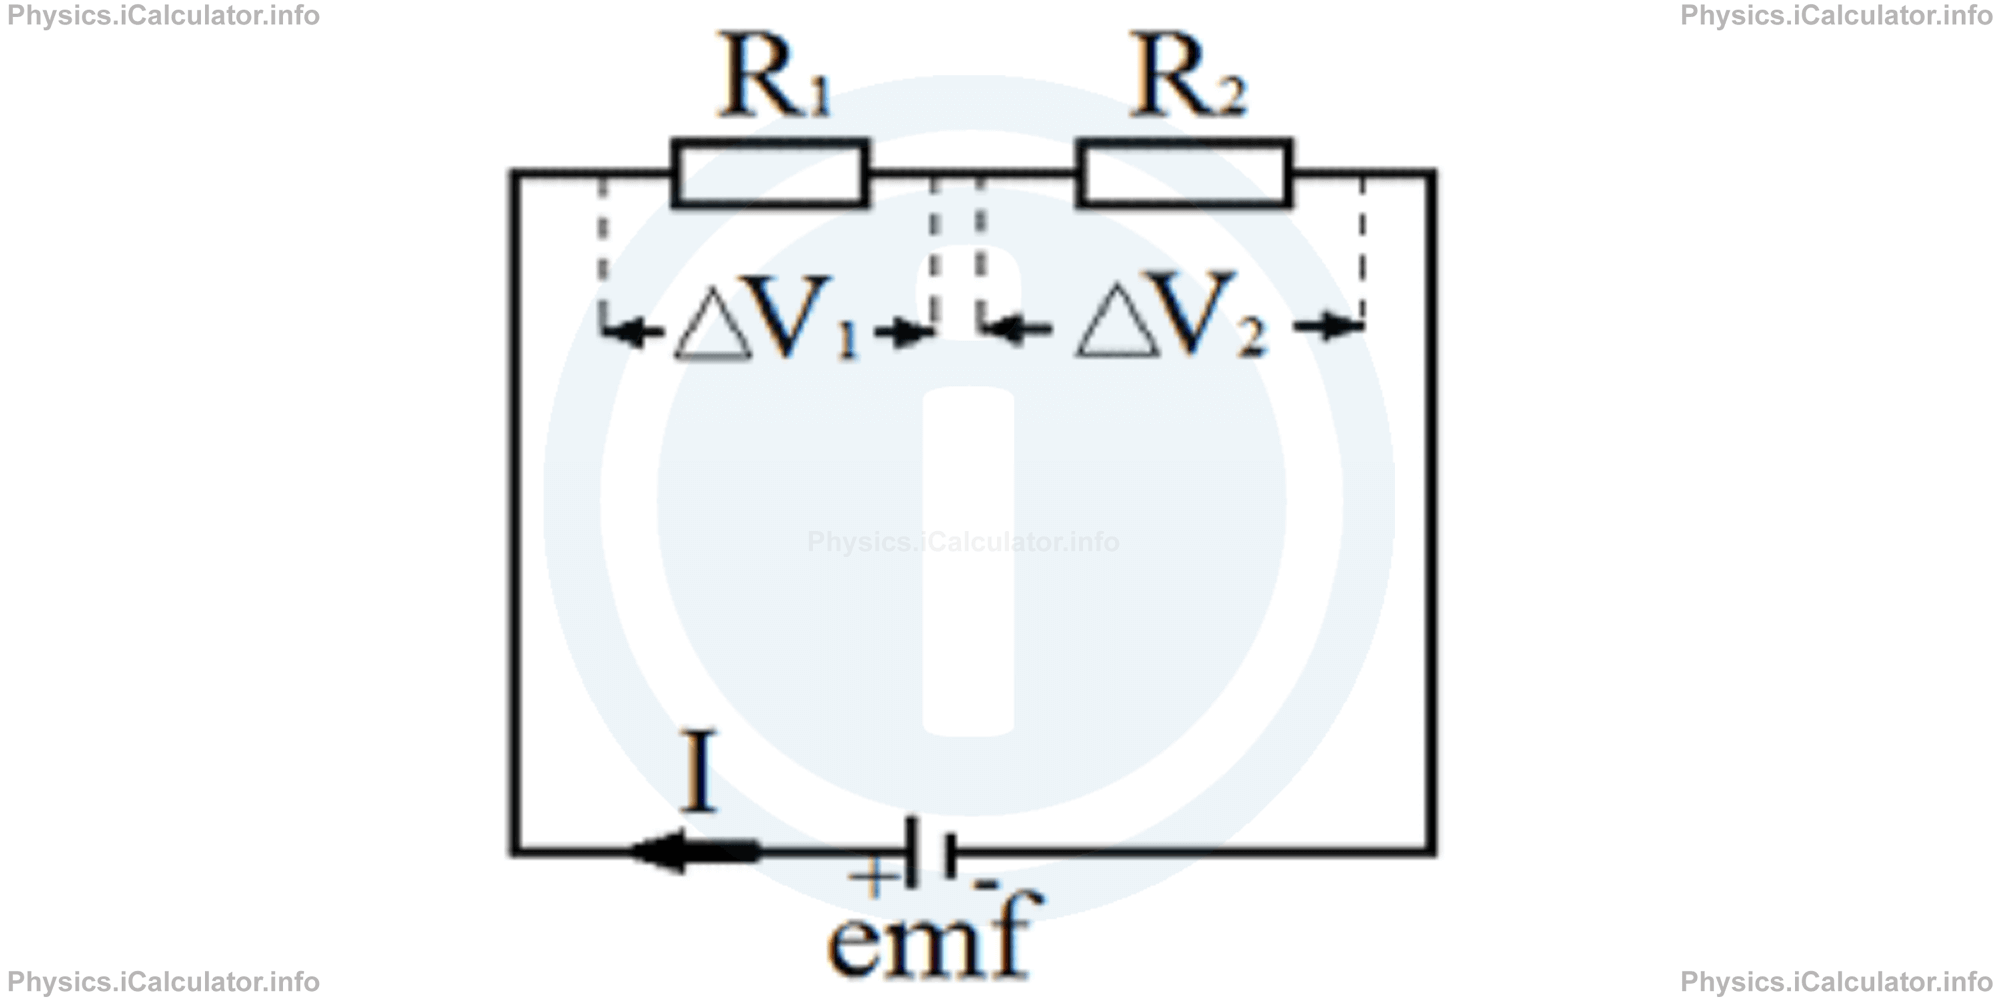 Physics Tutorials: This image provides visual information for the physics tutorial Electric Circuits. Series and Parallel Circuits. Short Circuits